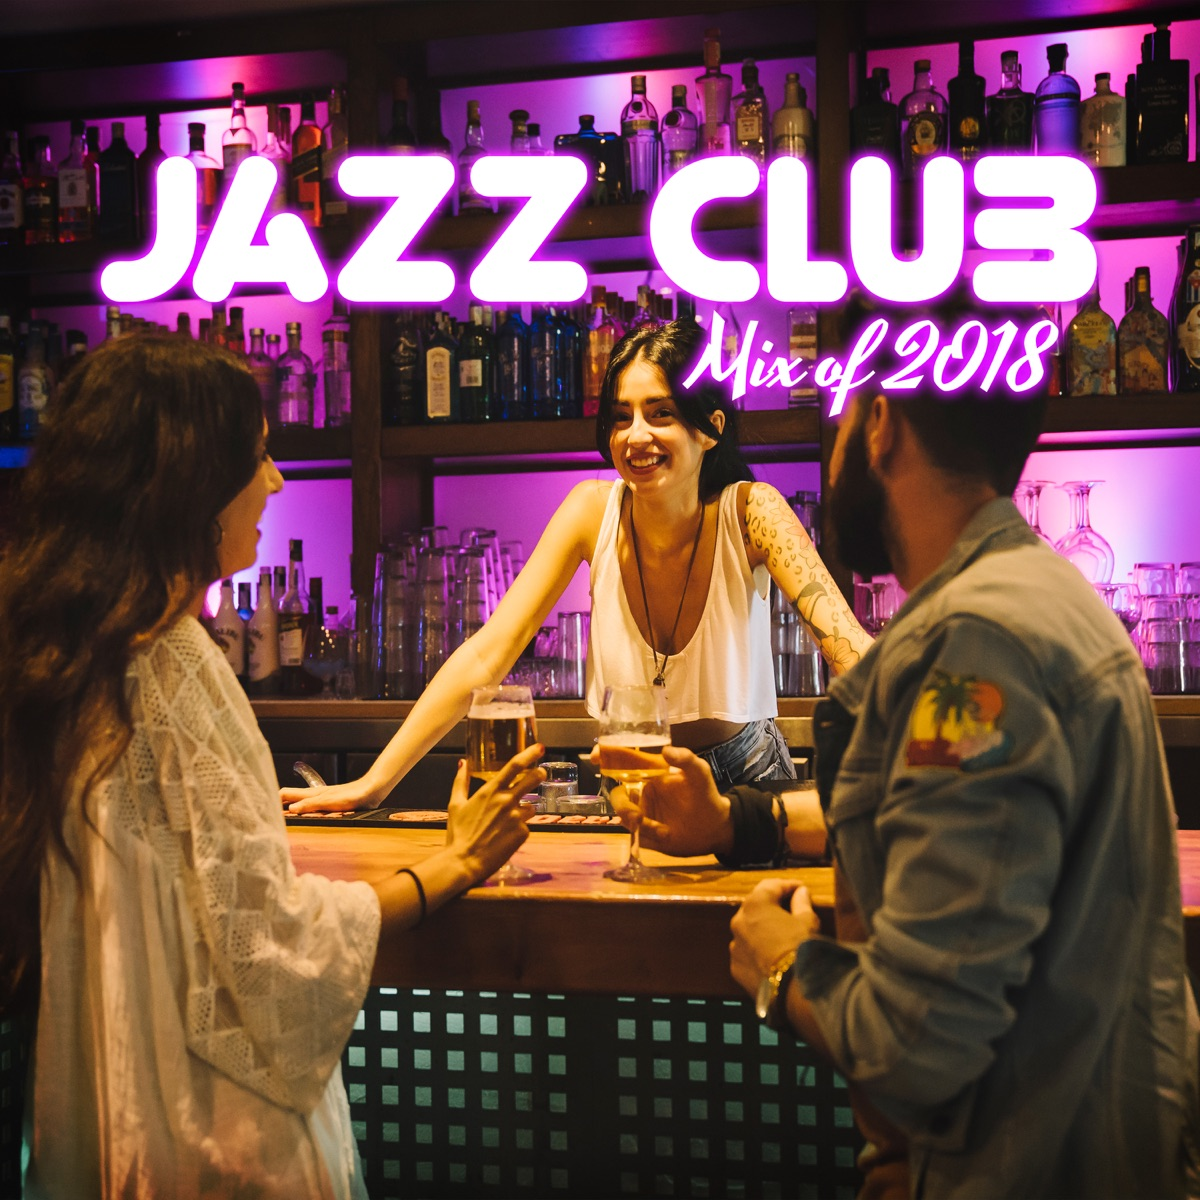 Jazz Club Mix of 2018: Summer Jazzy Party del Mar & Sunny Moody